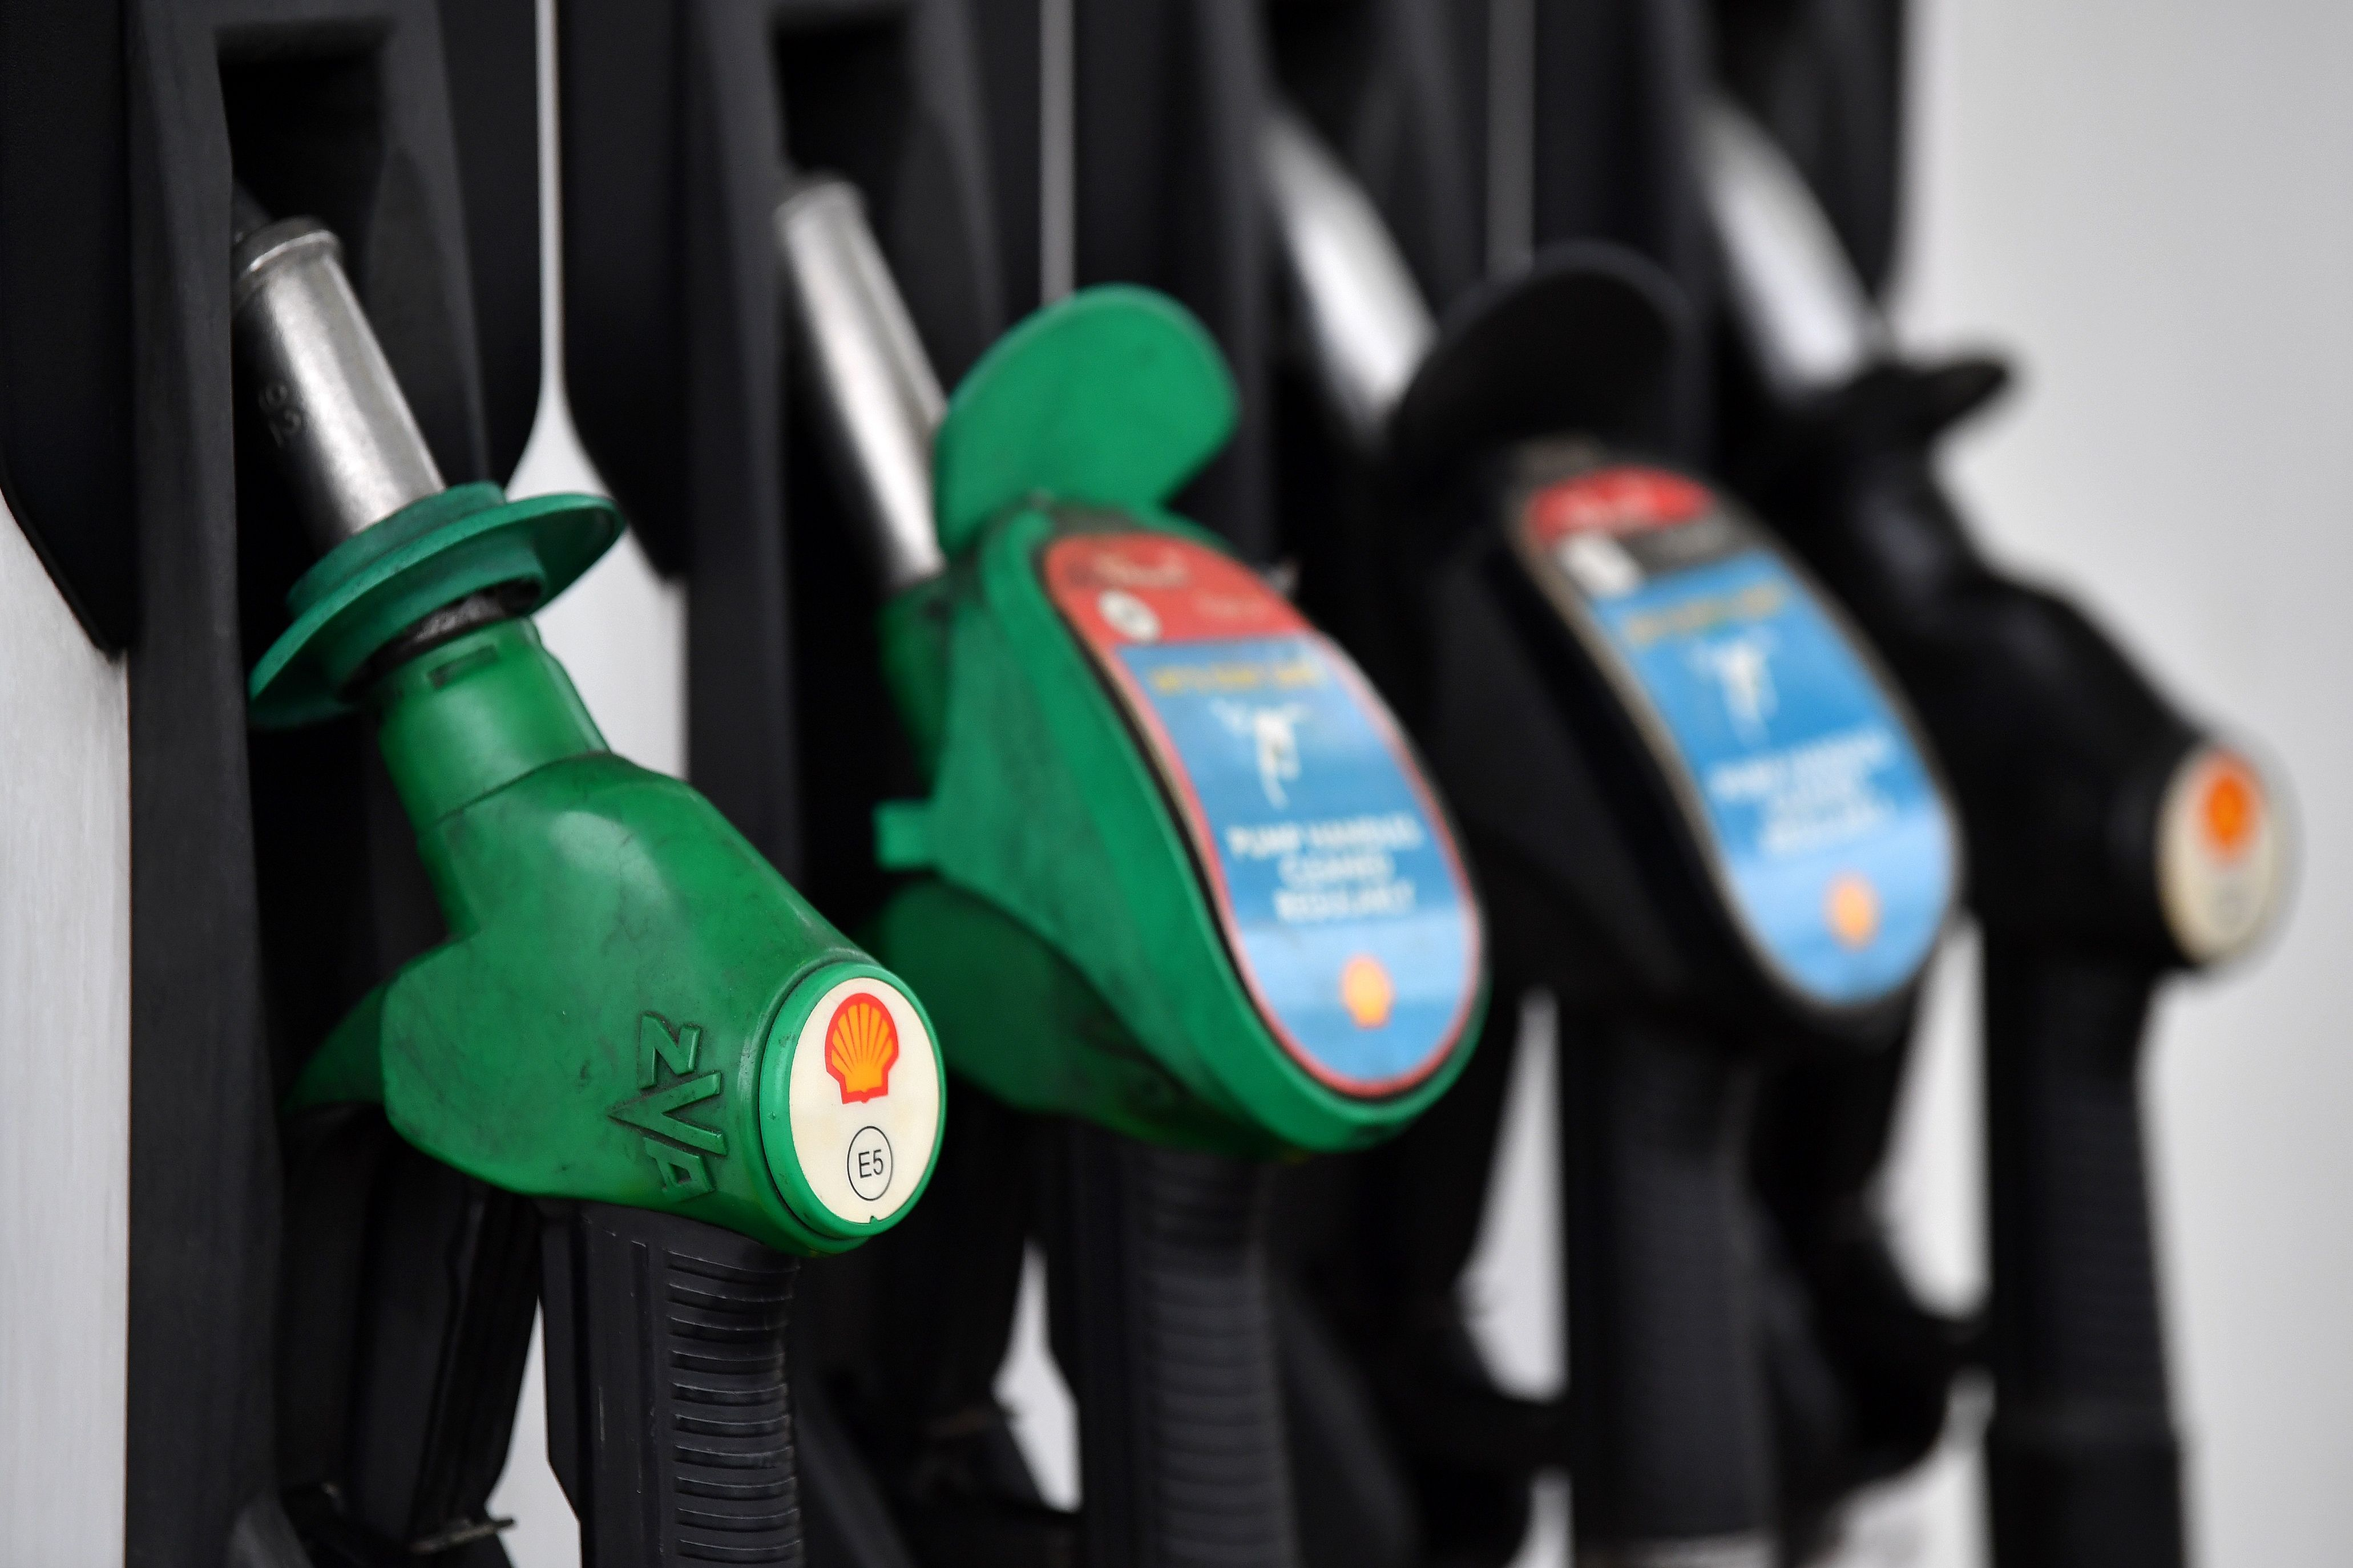 Petrol prices are set to drop by up to 5p per litre in the next two weeks